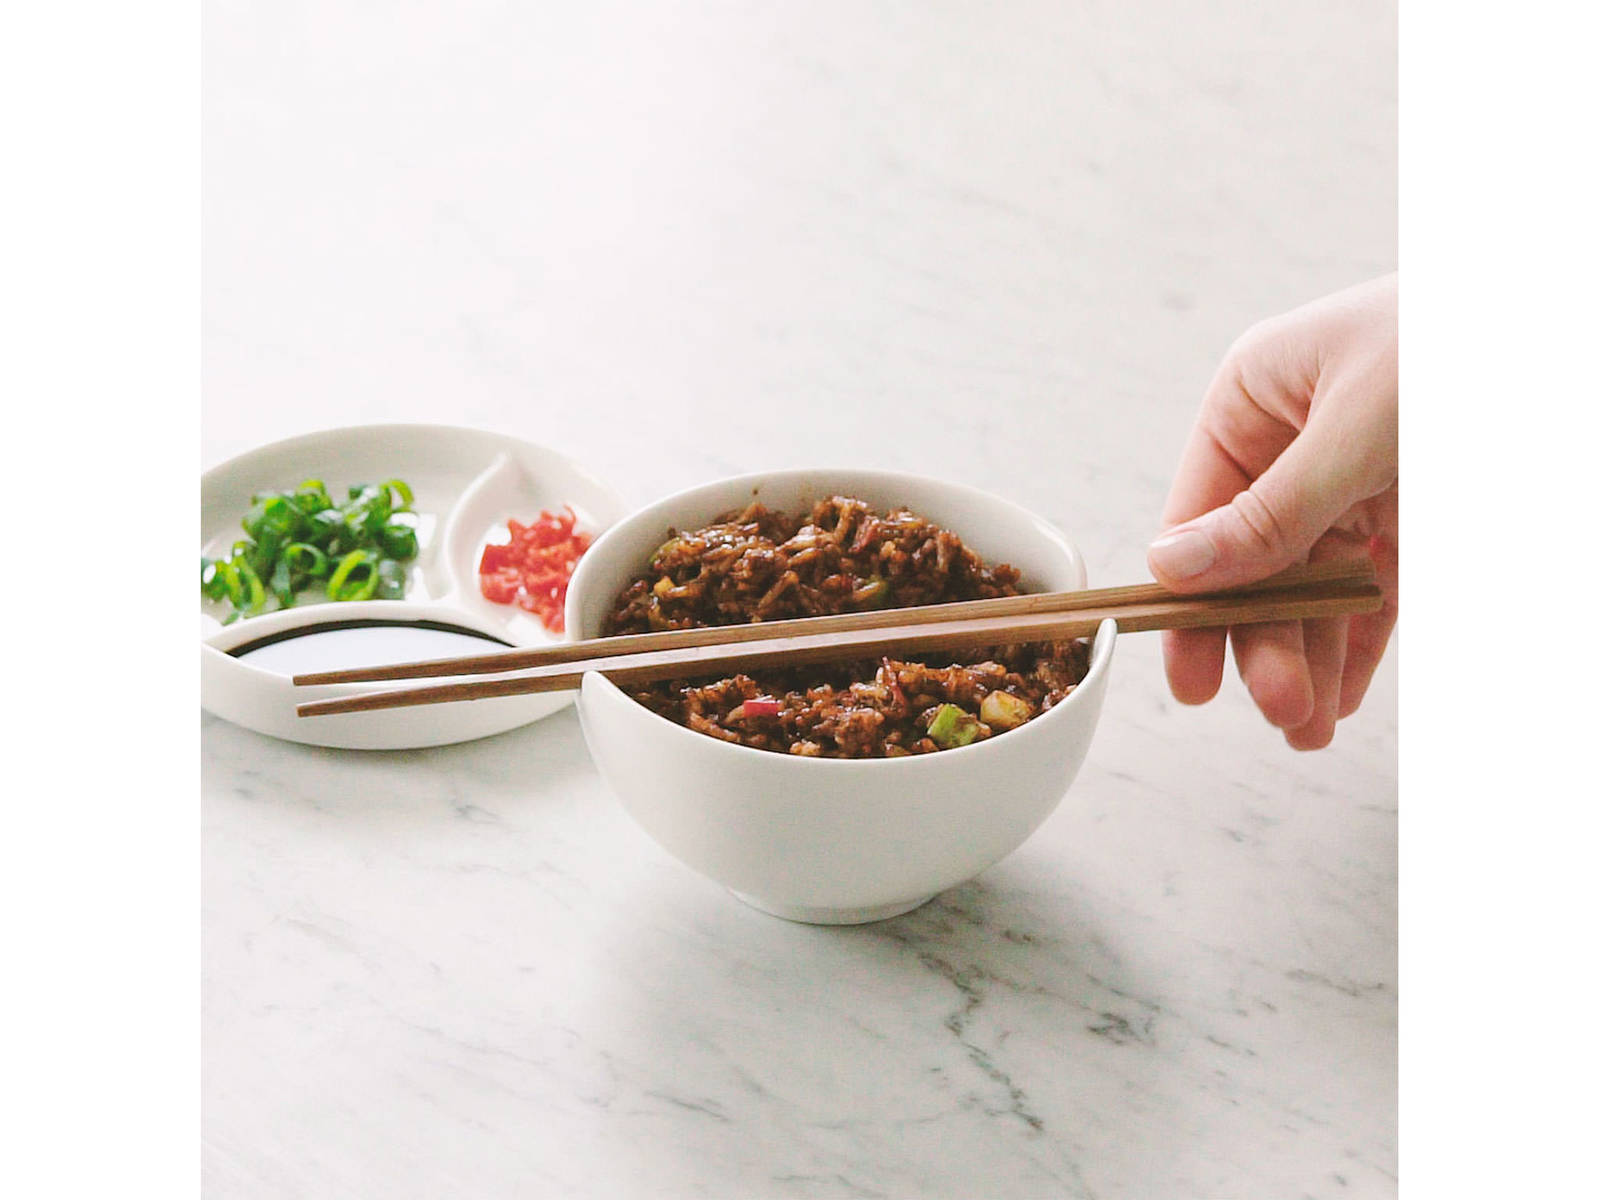 Transfer to a serving bowl and garnish with reserved scallion greens, fresh chili and soy sauce to taste. Enjoy!